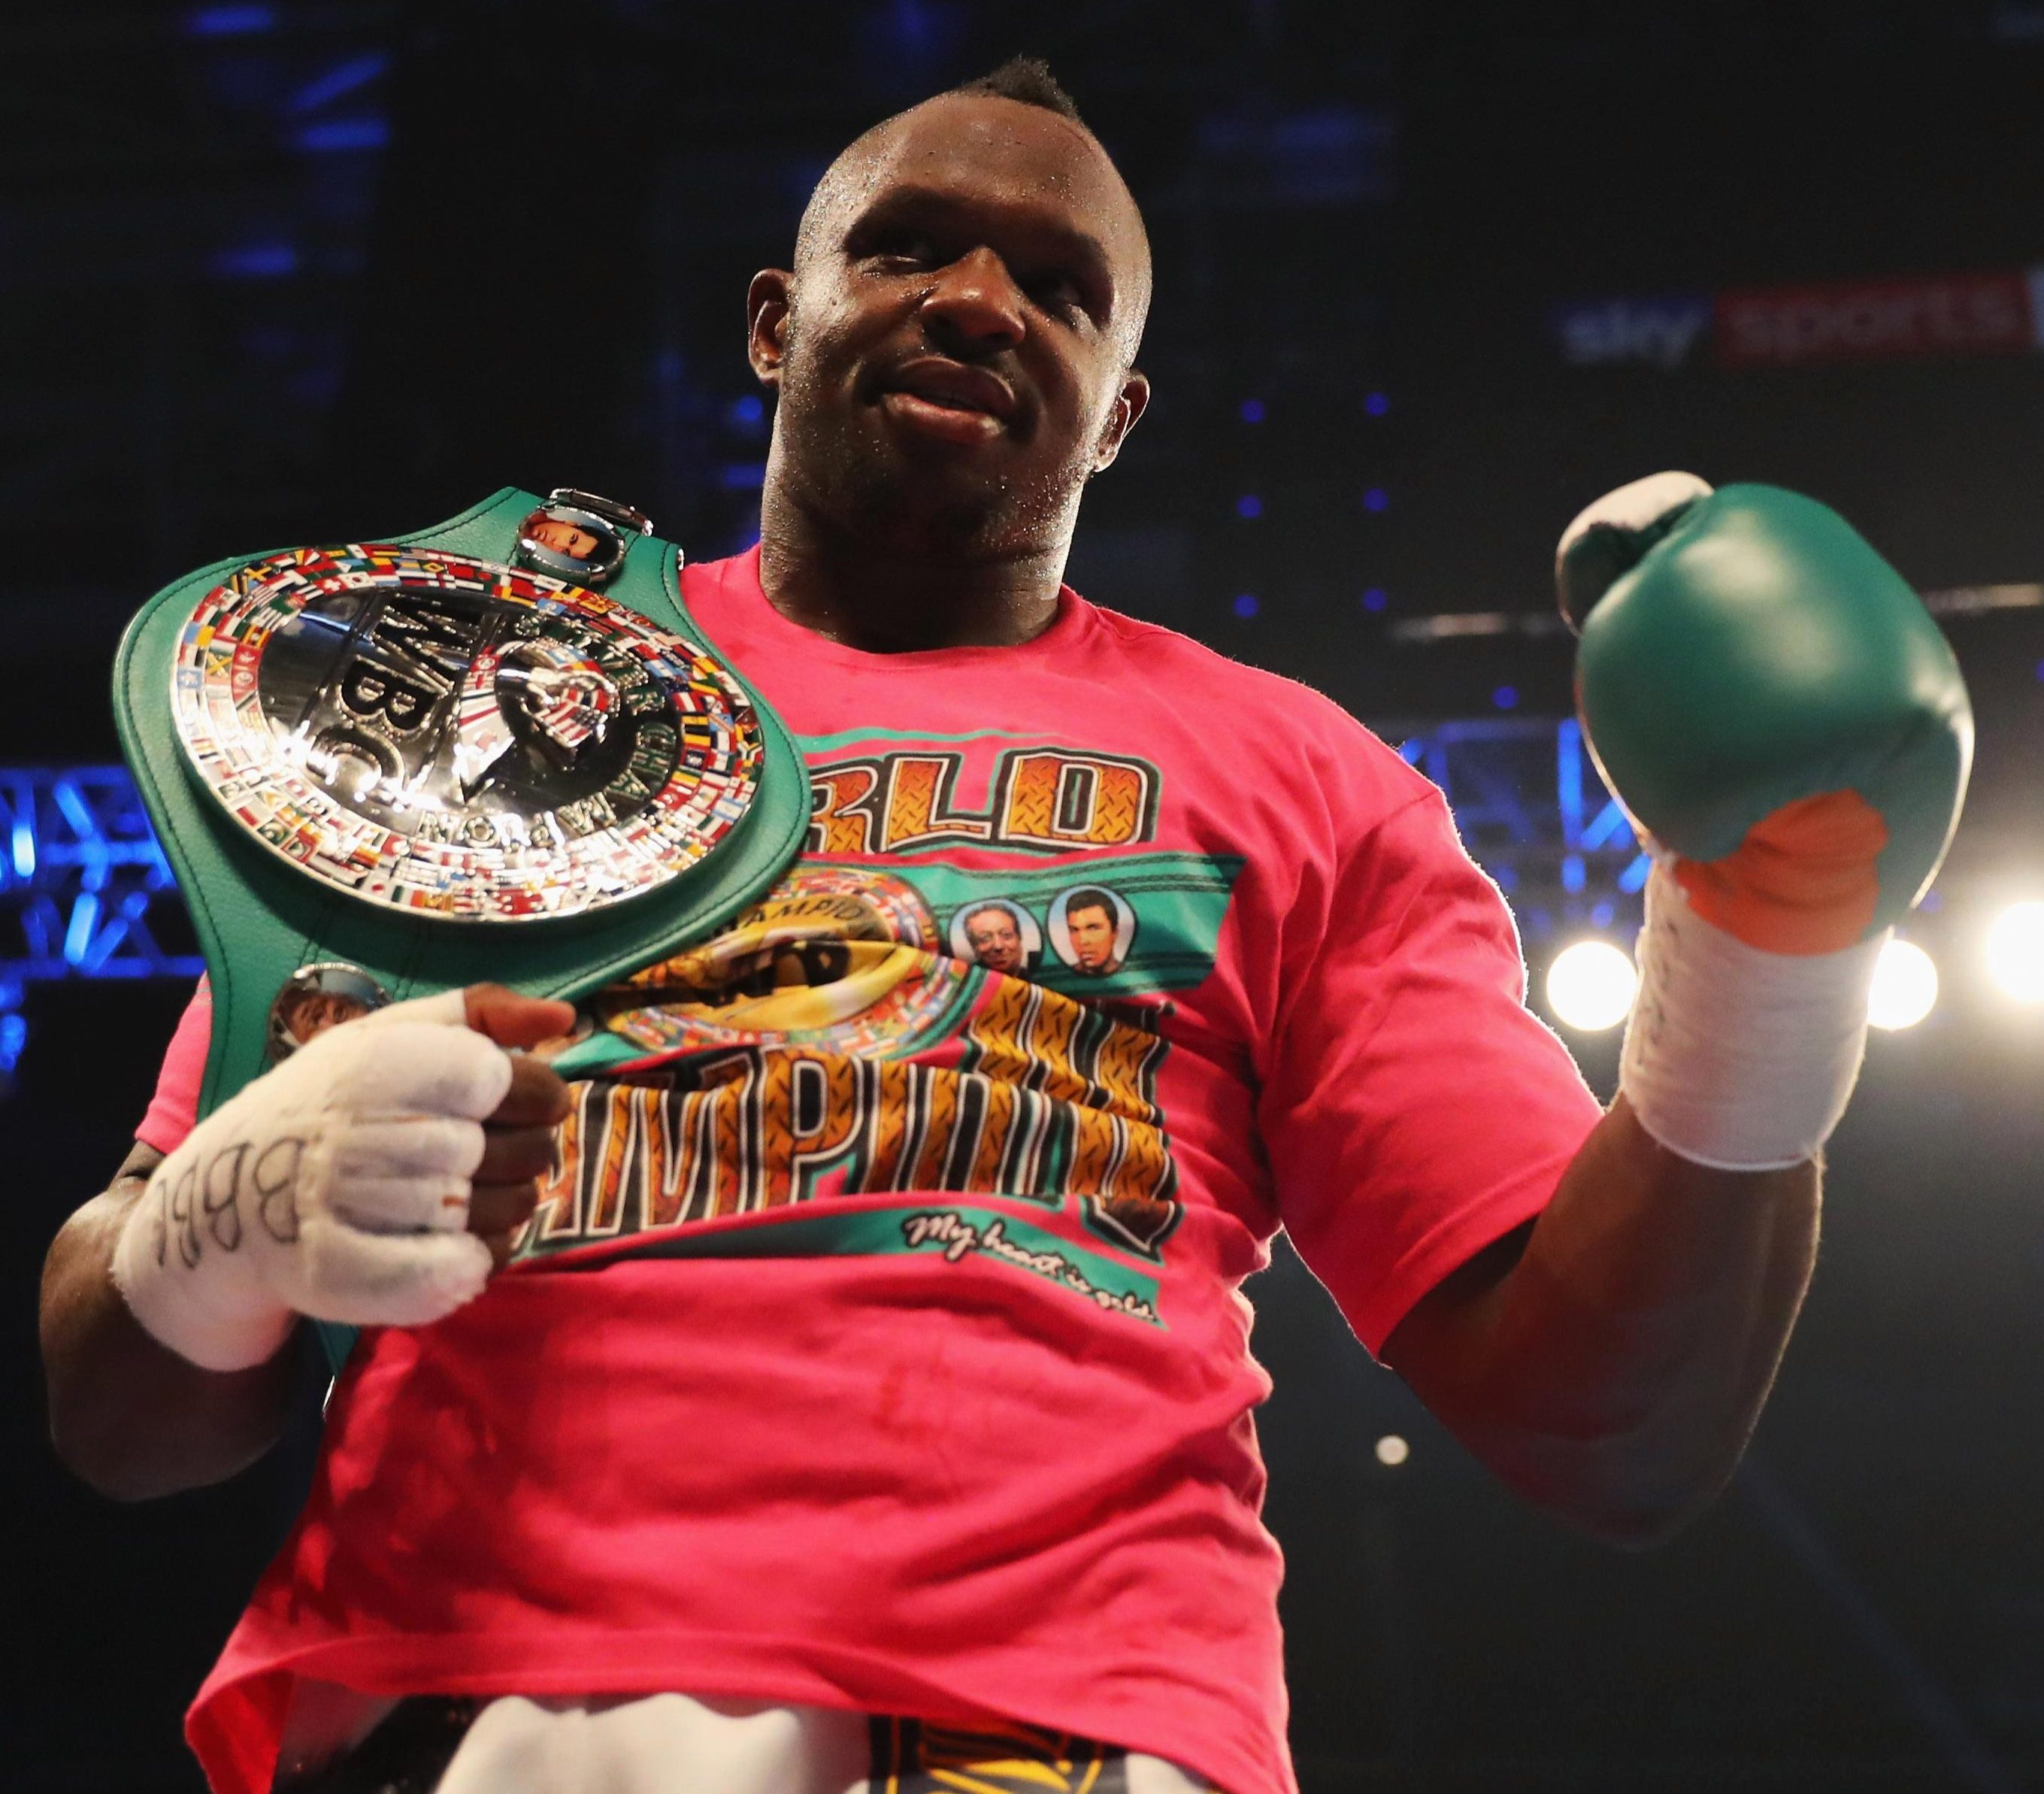 Dillian Whyte is confident he is just two wins from dethroning Anthony Joshua and becoming world heavyweight champion